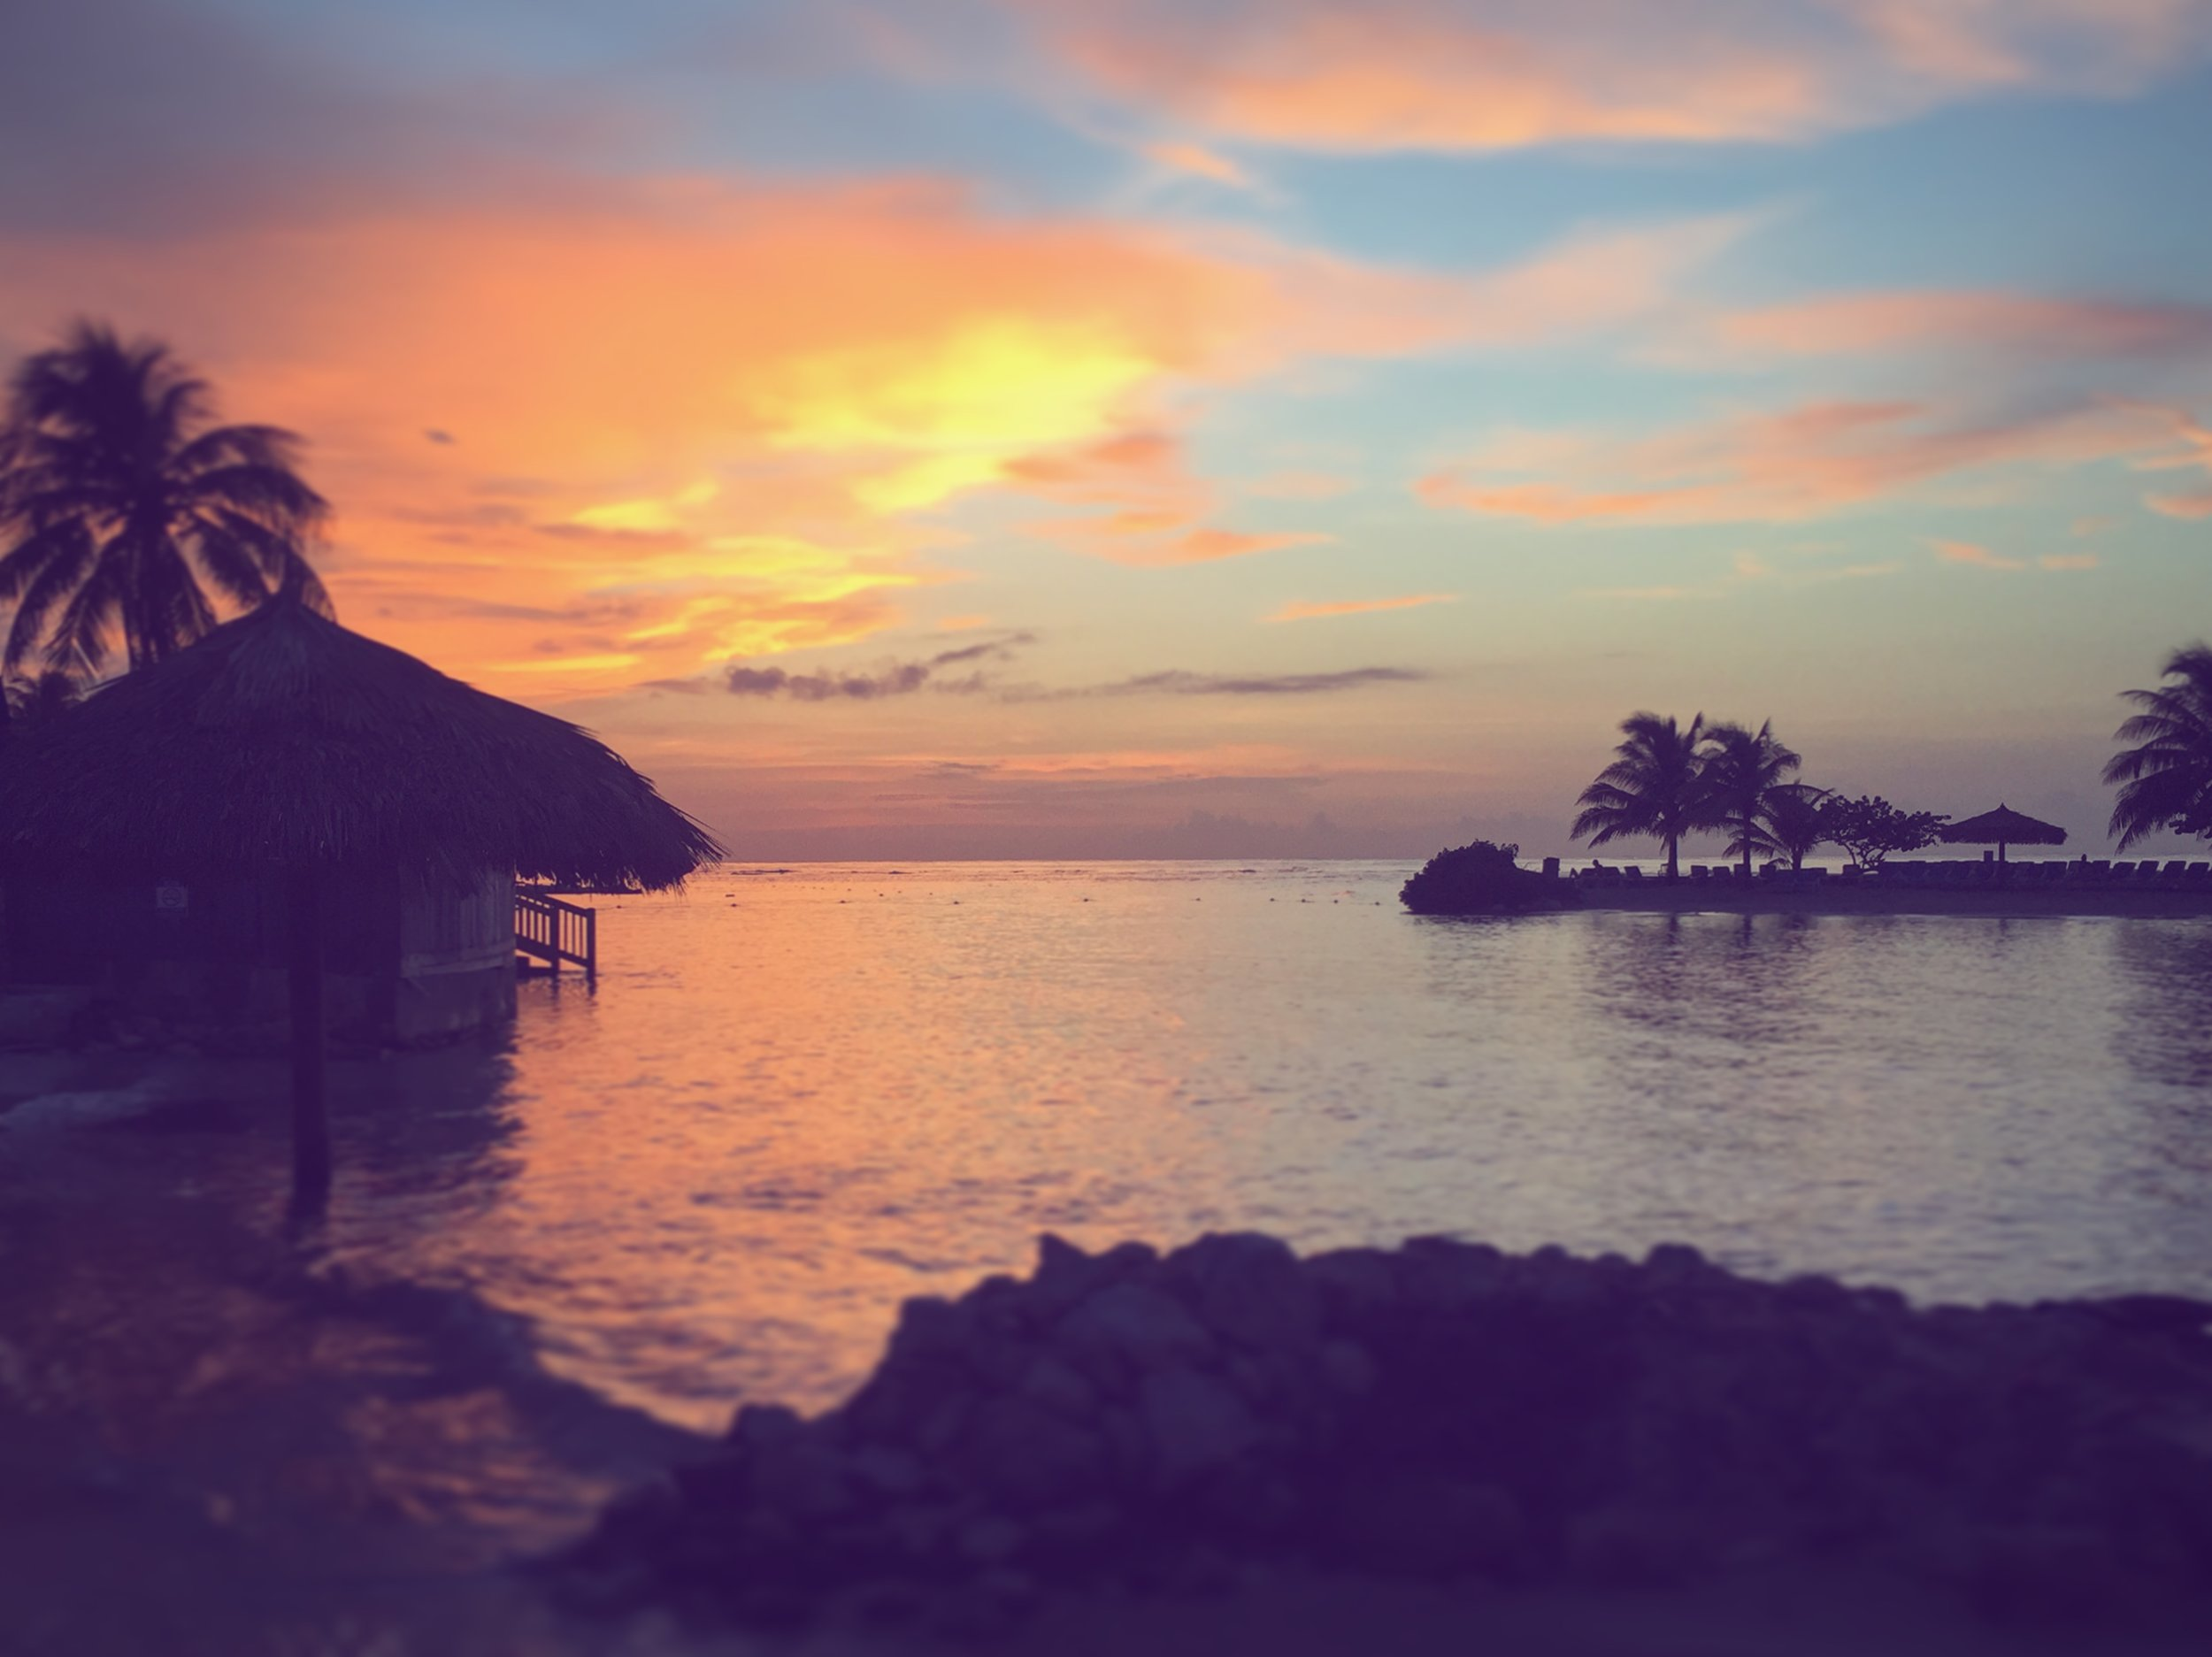 Sunset in Montego Bay, Jamaica